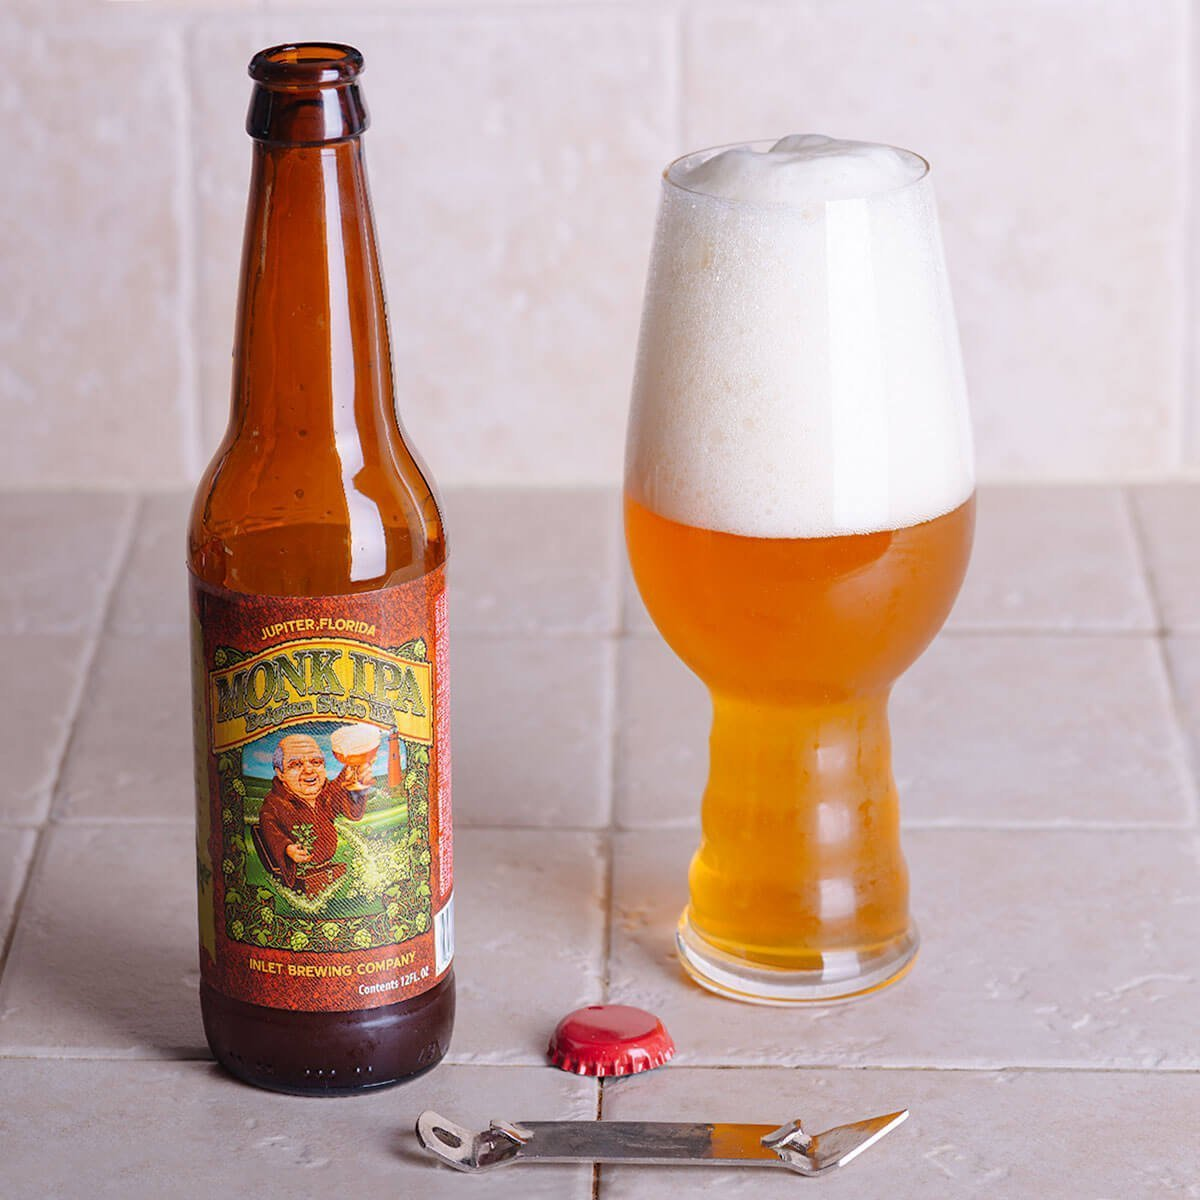 Monk IPA is a Belgian-style IPA by Inlet Brewing Company whose hop-forward character is complemented by yeast, tropical fruit, and bready malt.